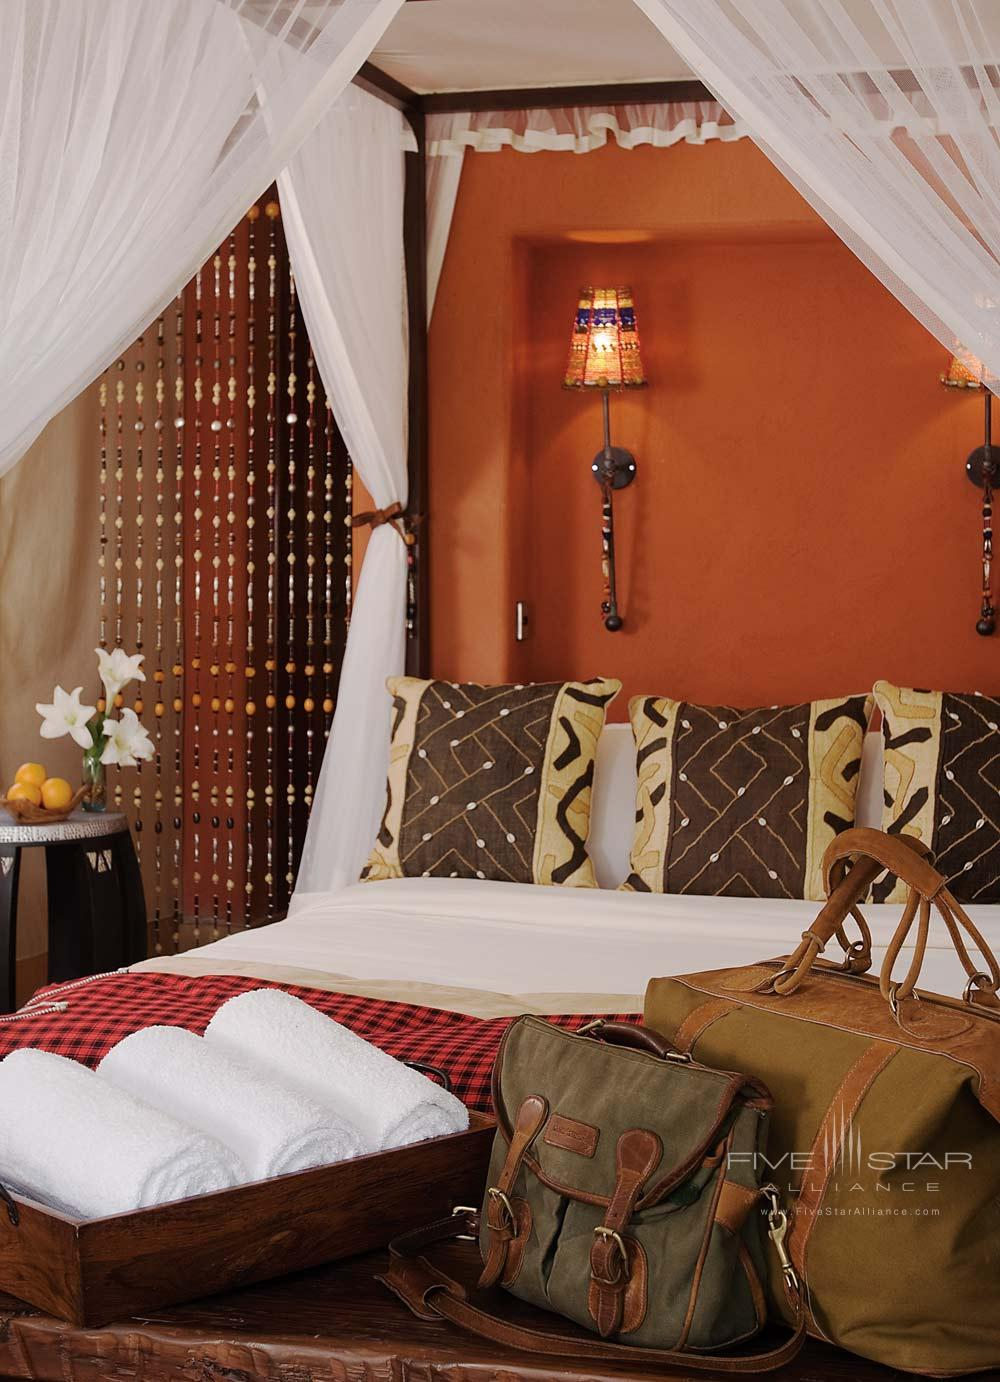 Guest Room at Fairmont Mara Safari Club